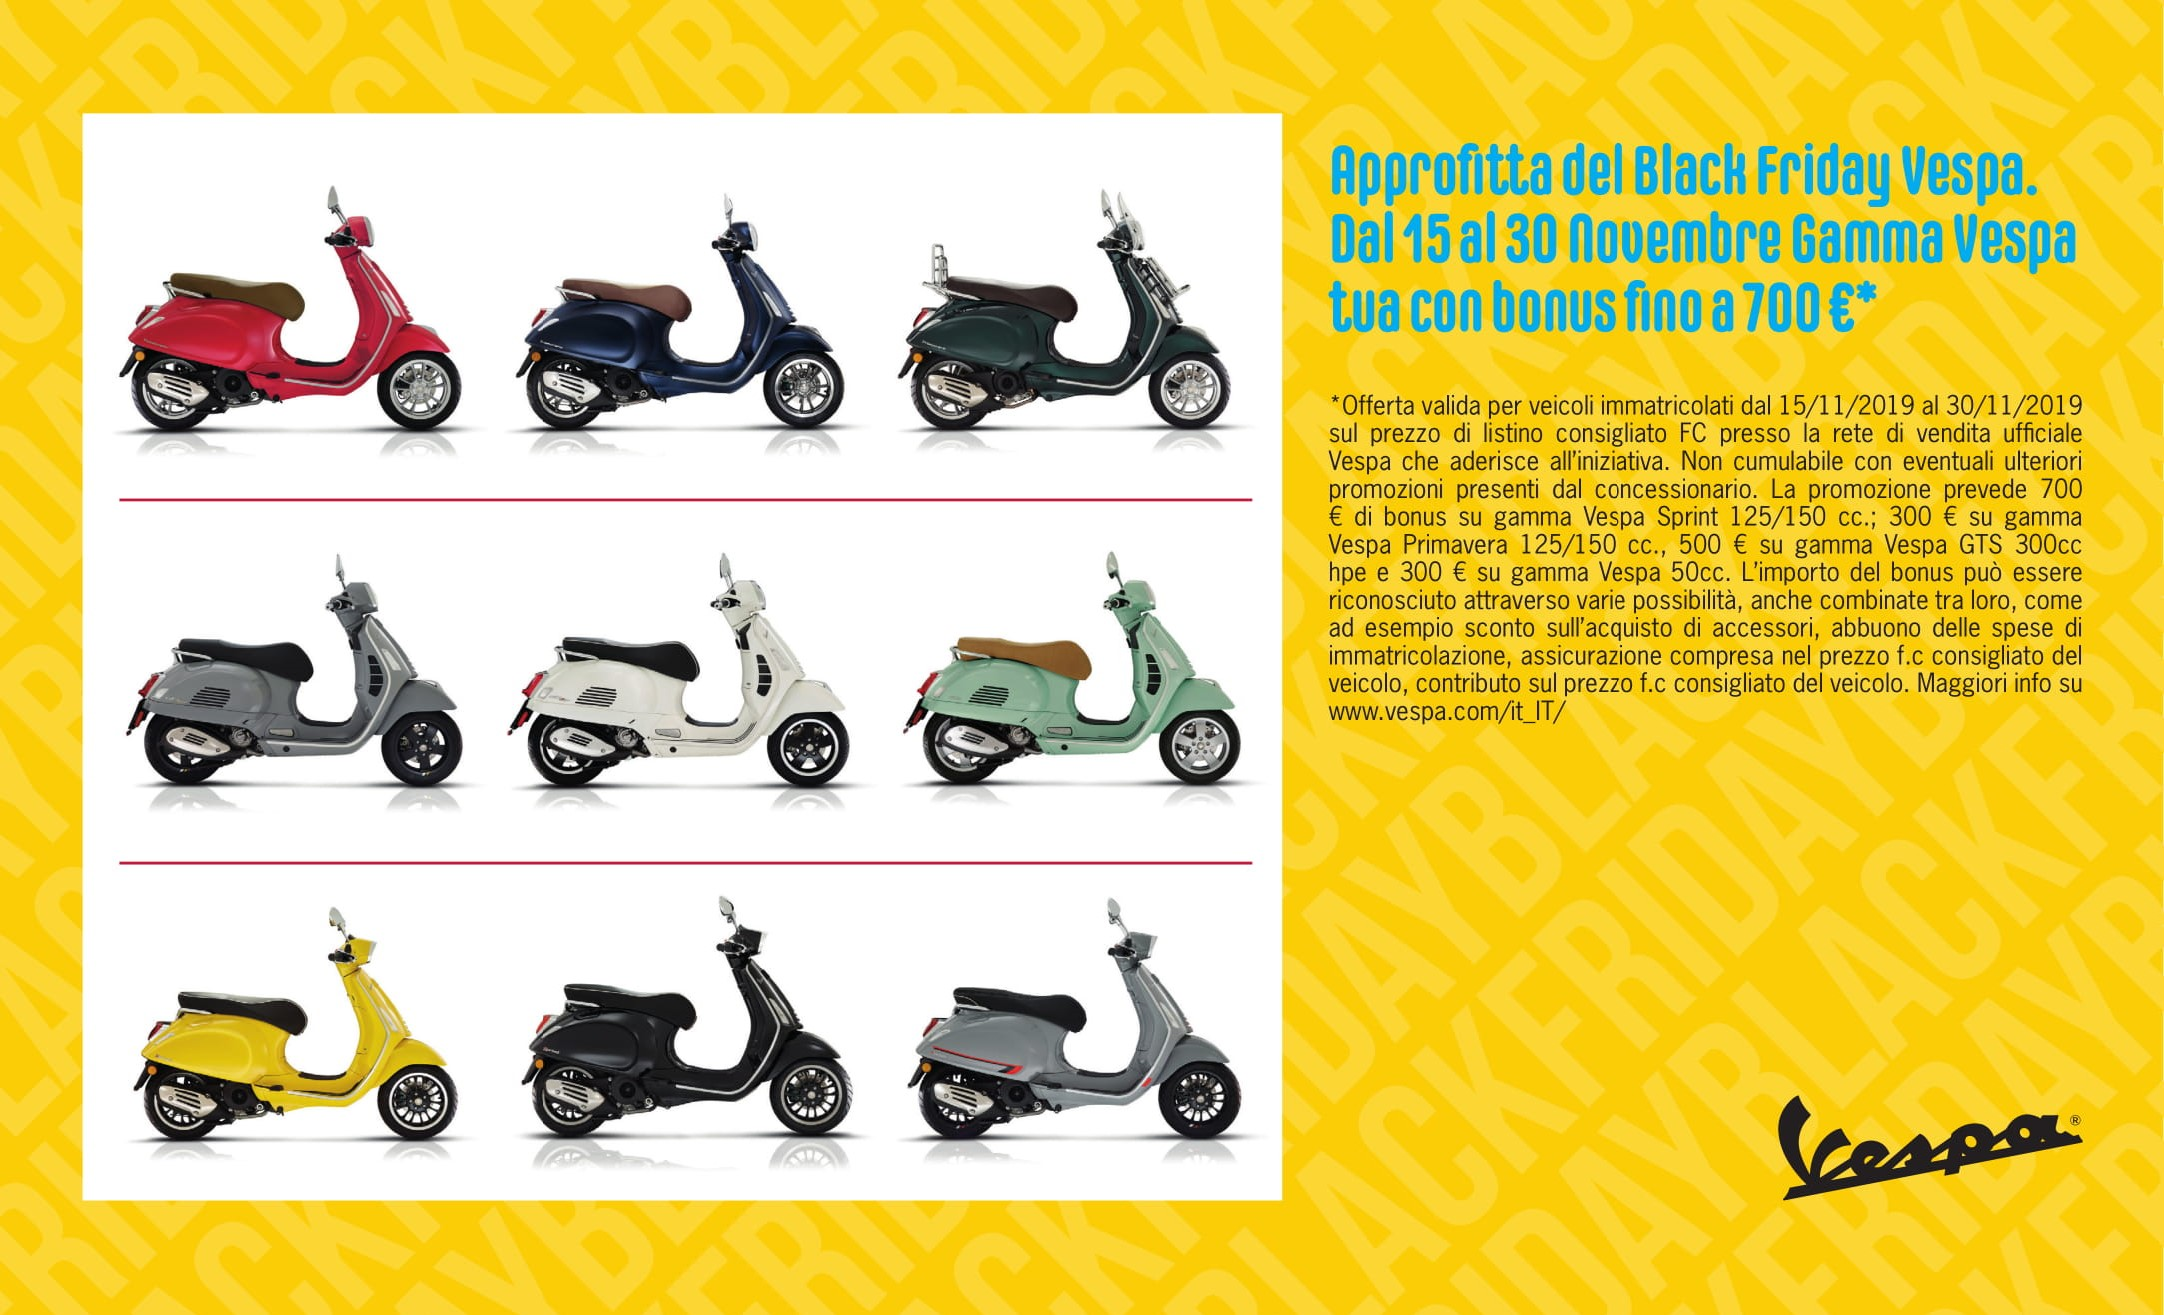 BLACK FRIDAY DI VESPA!